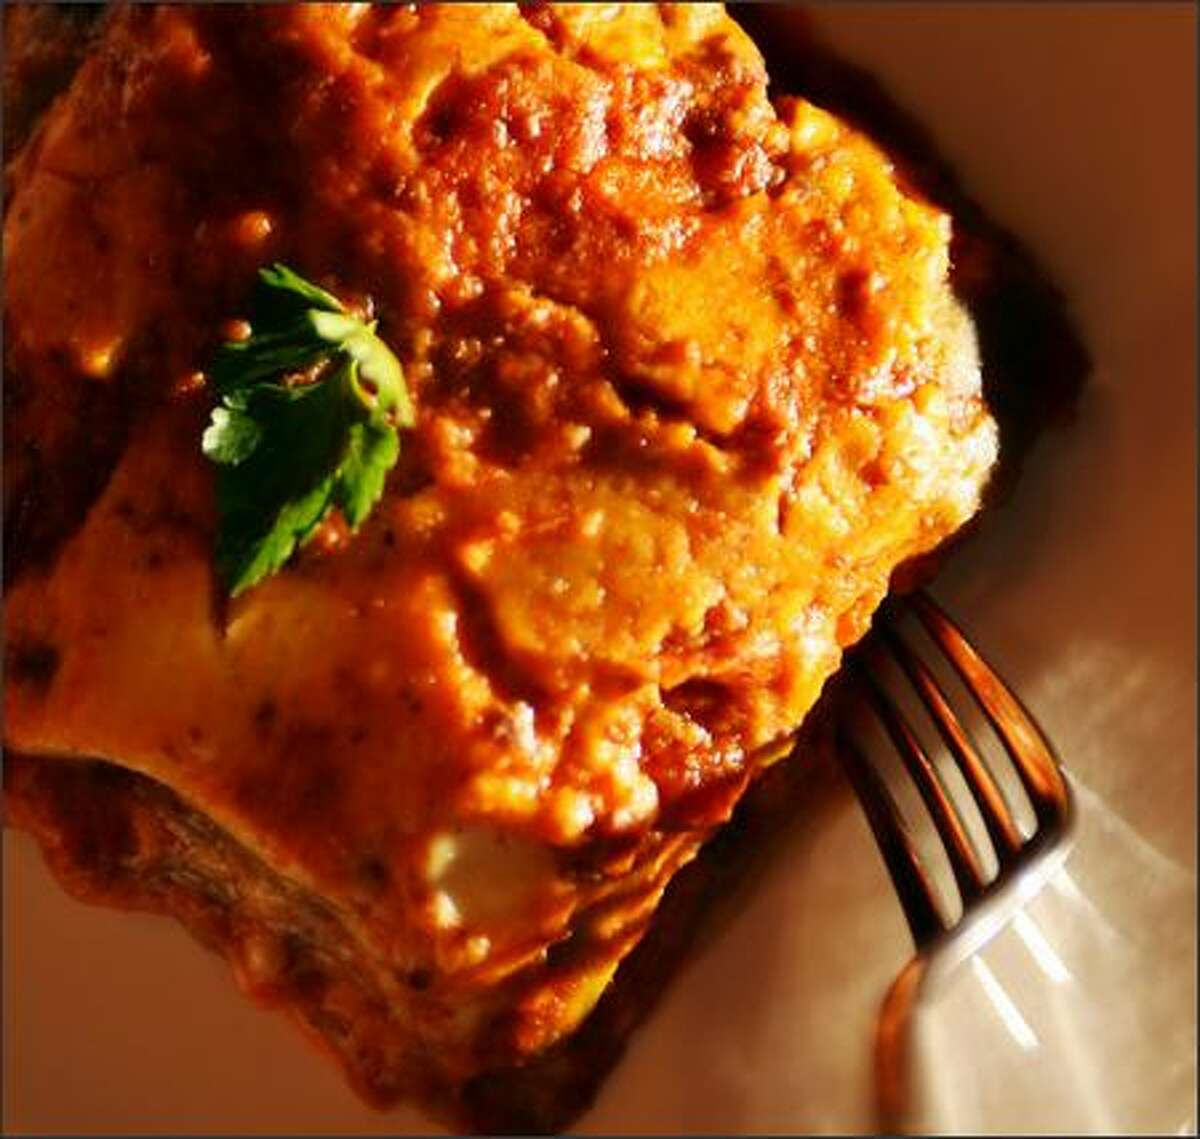 A satisfying lasagna is made with veil-thin sheets of noodle that encase a light béchamel and pure ragu.